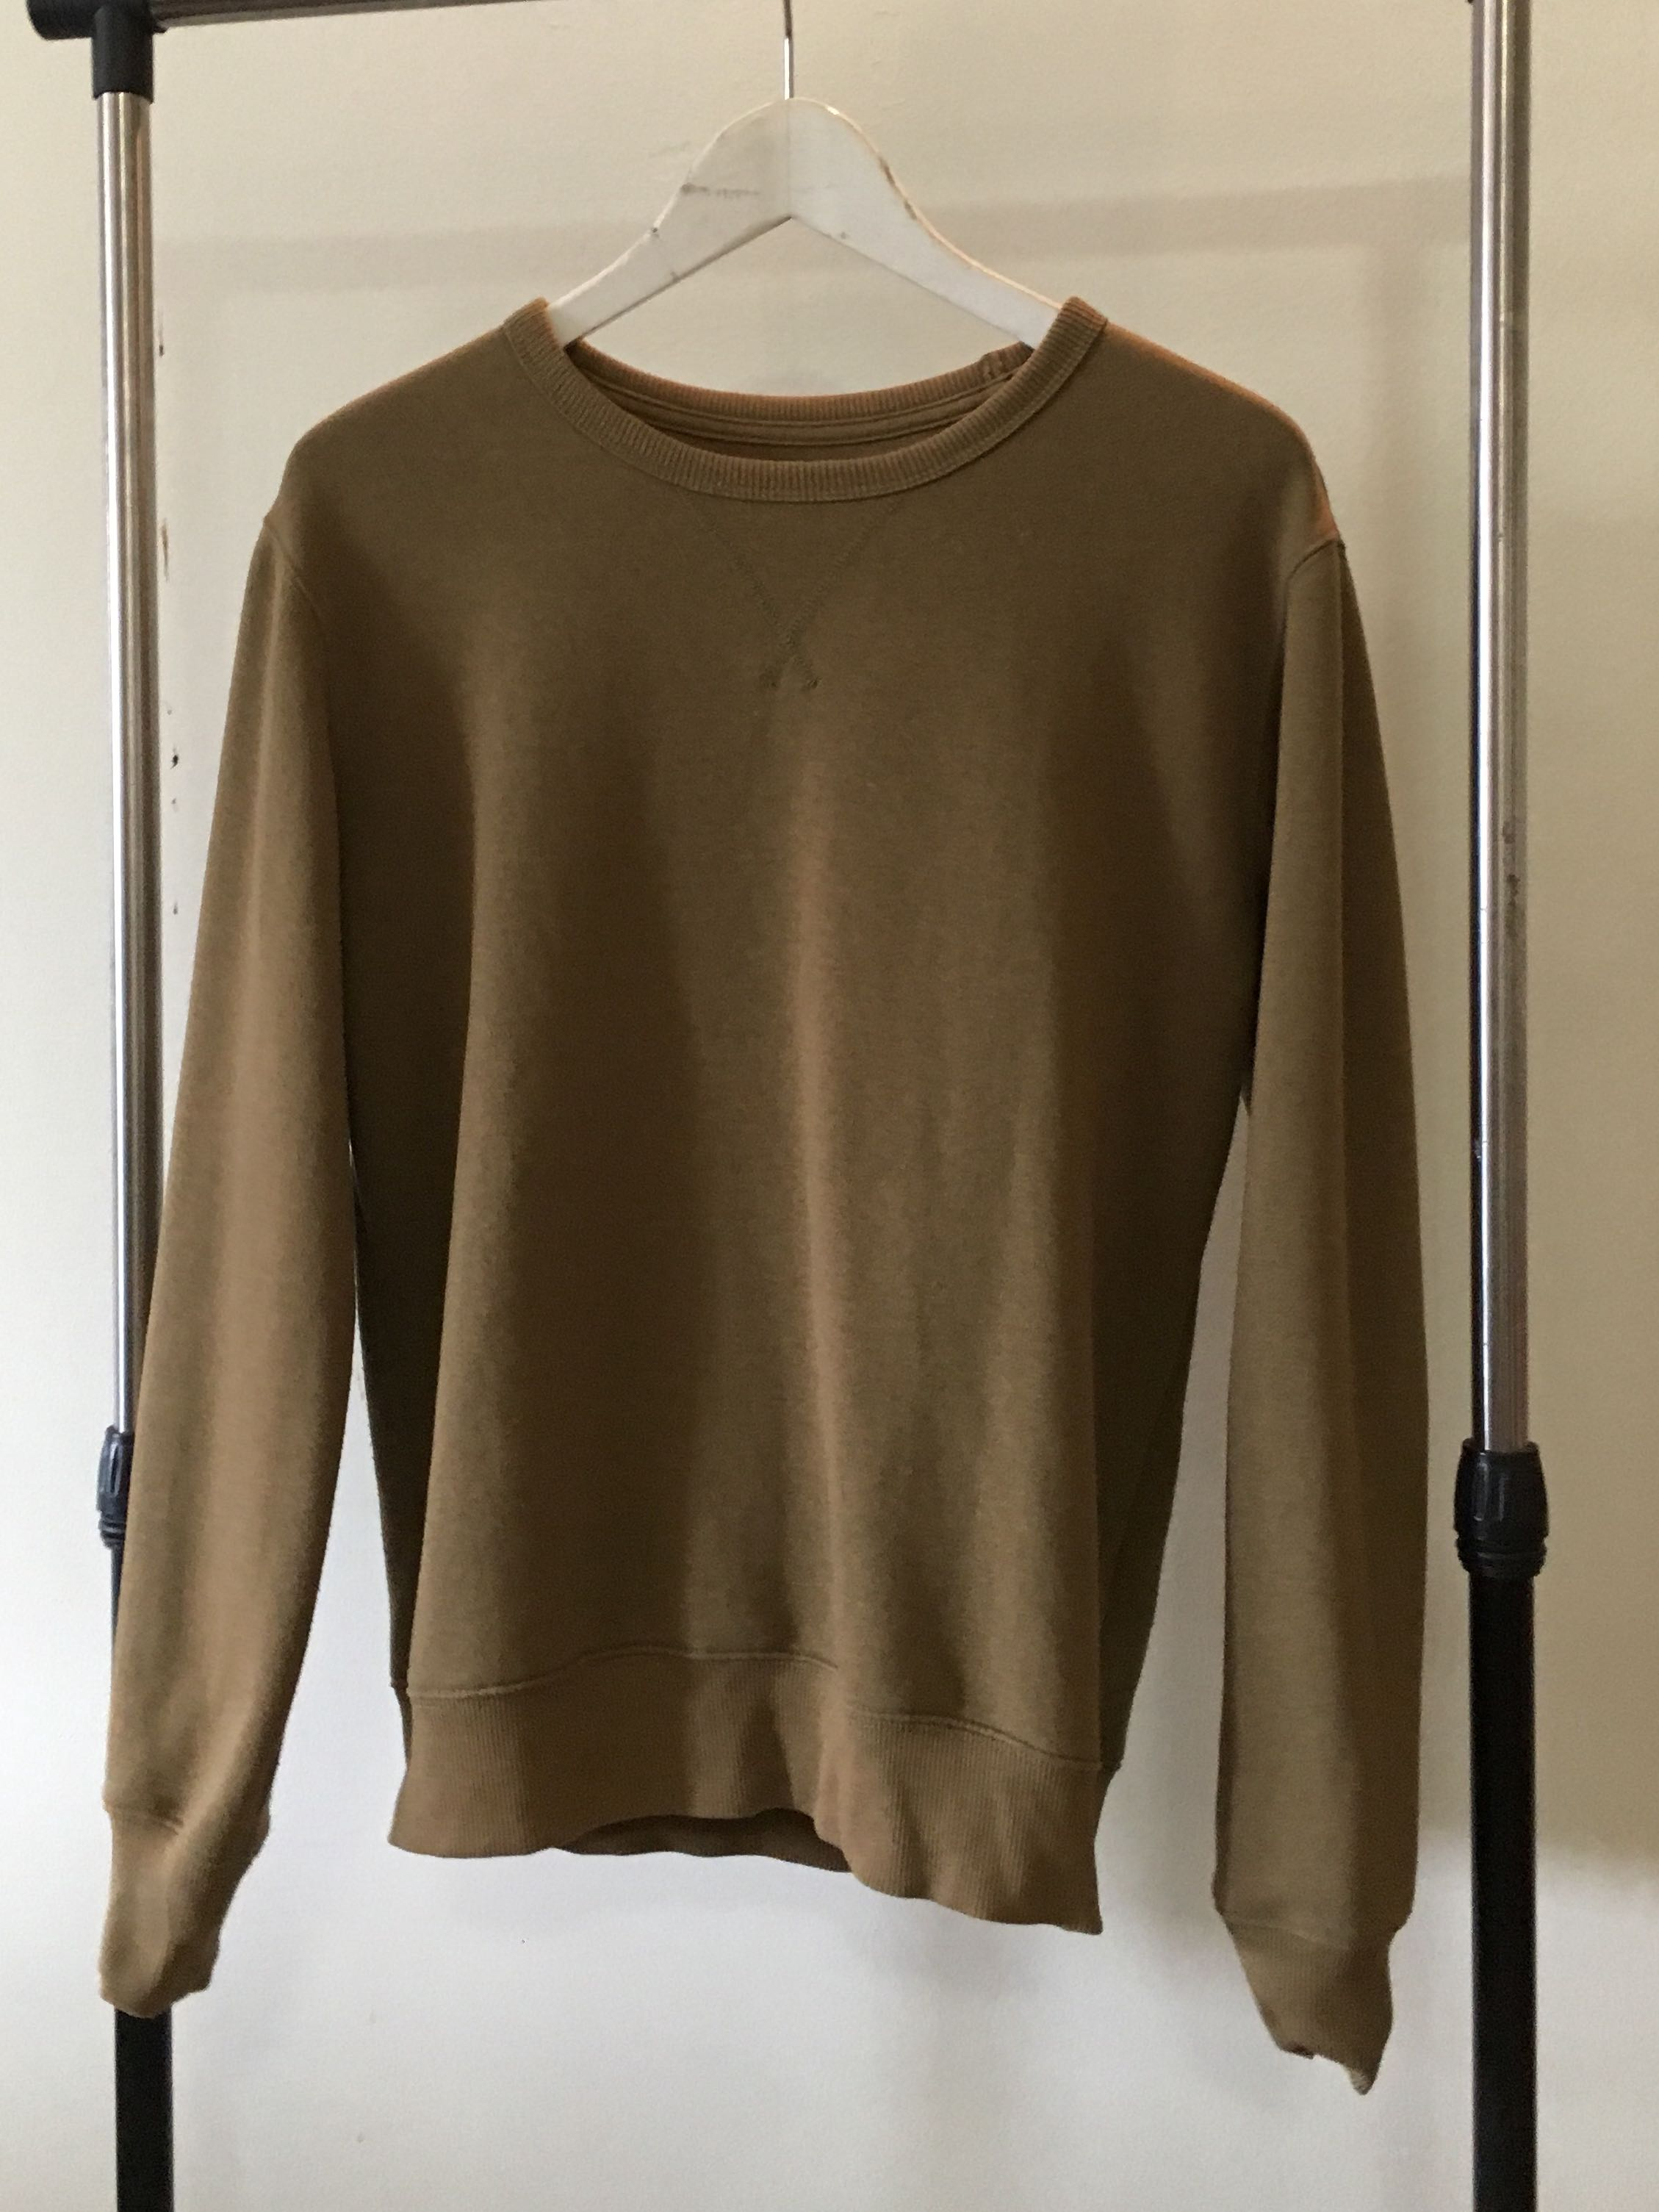 7db5eb525 PRELOVED SPAO SWEATSHIRT, Men's Fashion, Clothes, Tops on Carousell